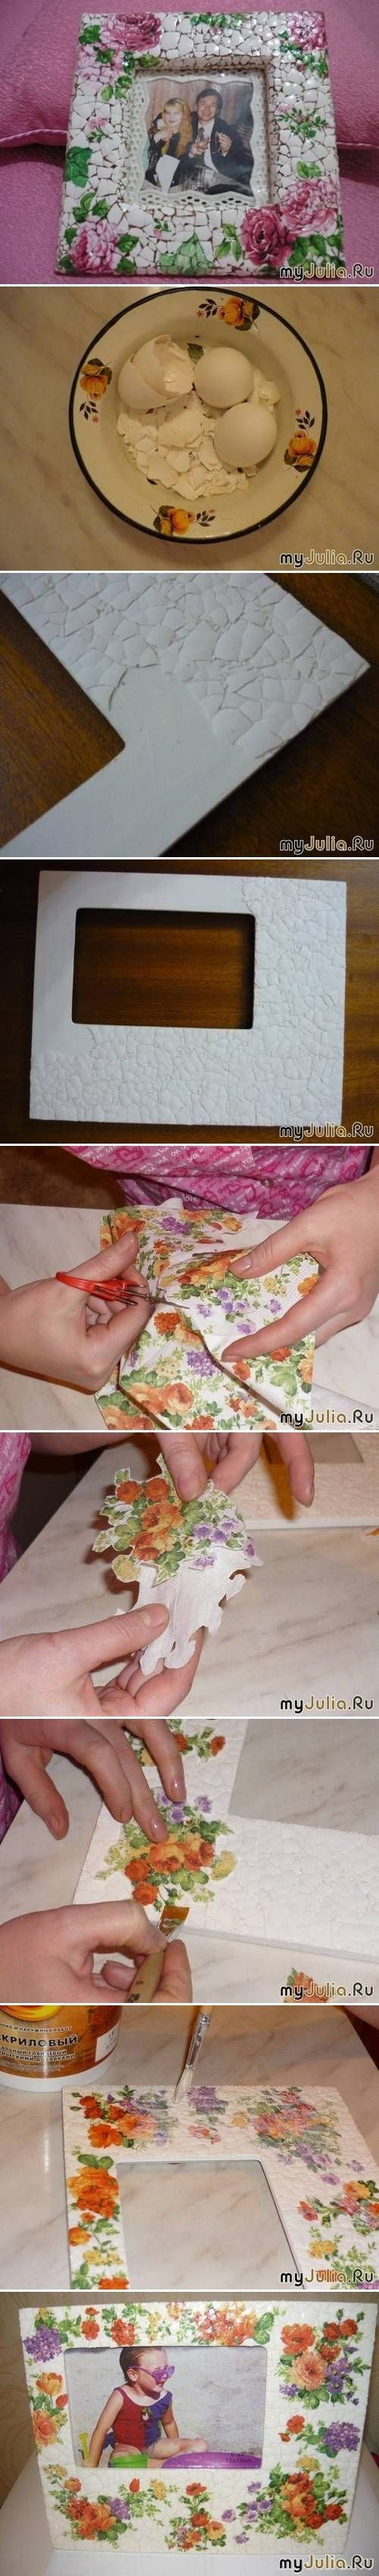 best crafts diy recoupage images on pinterest rock painting